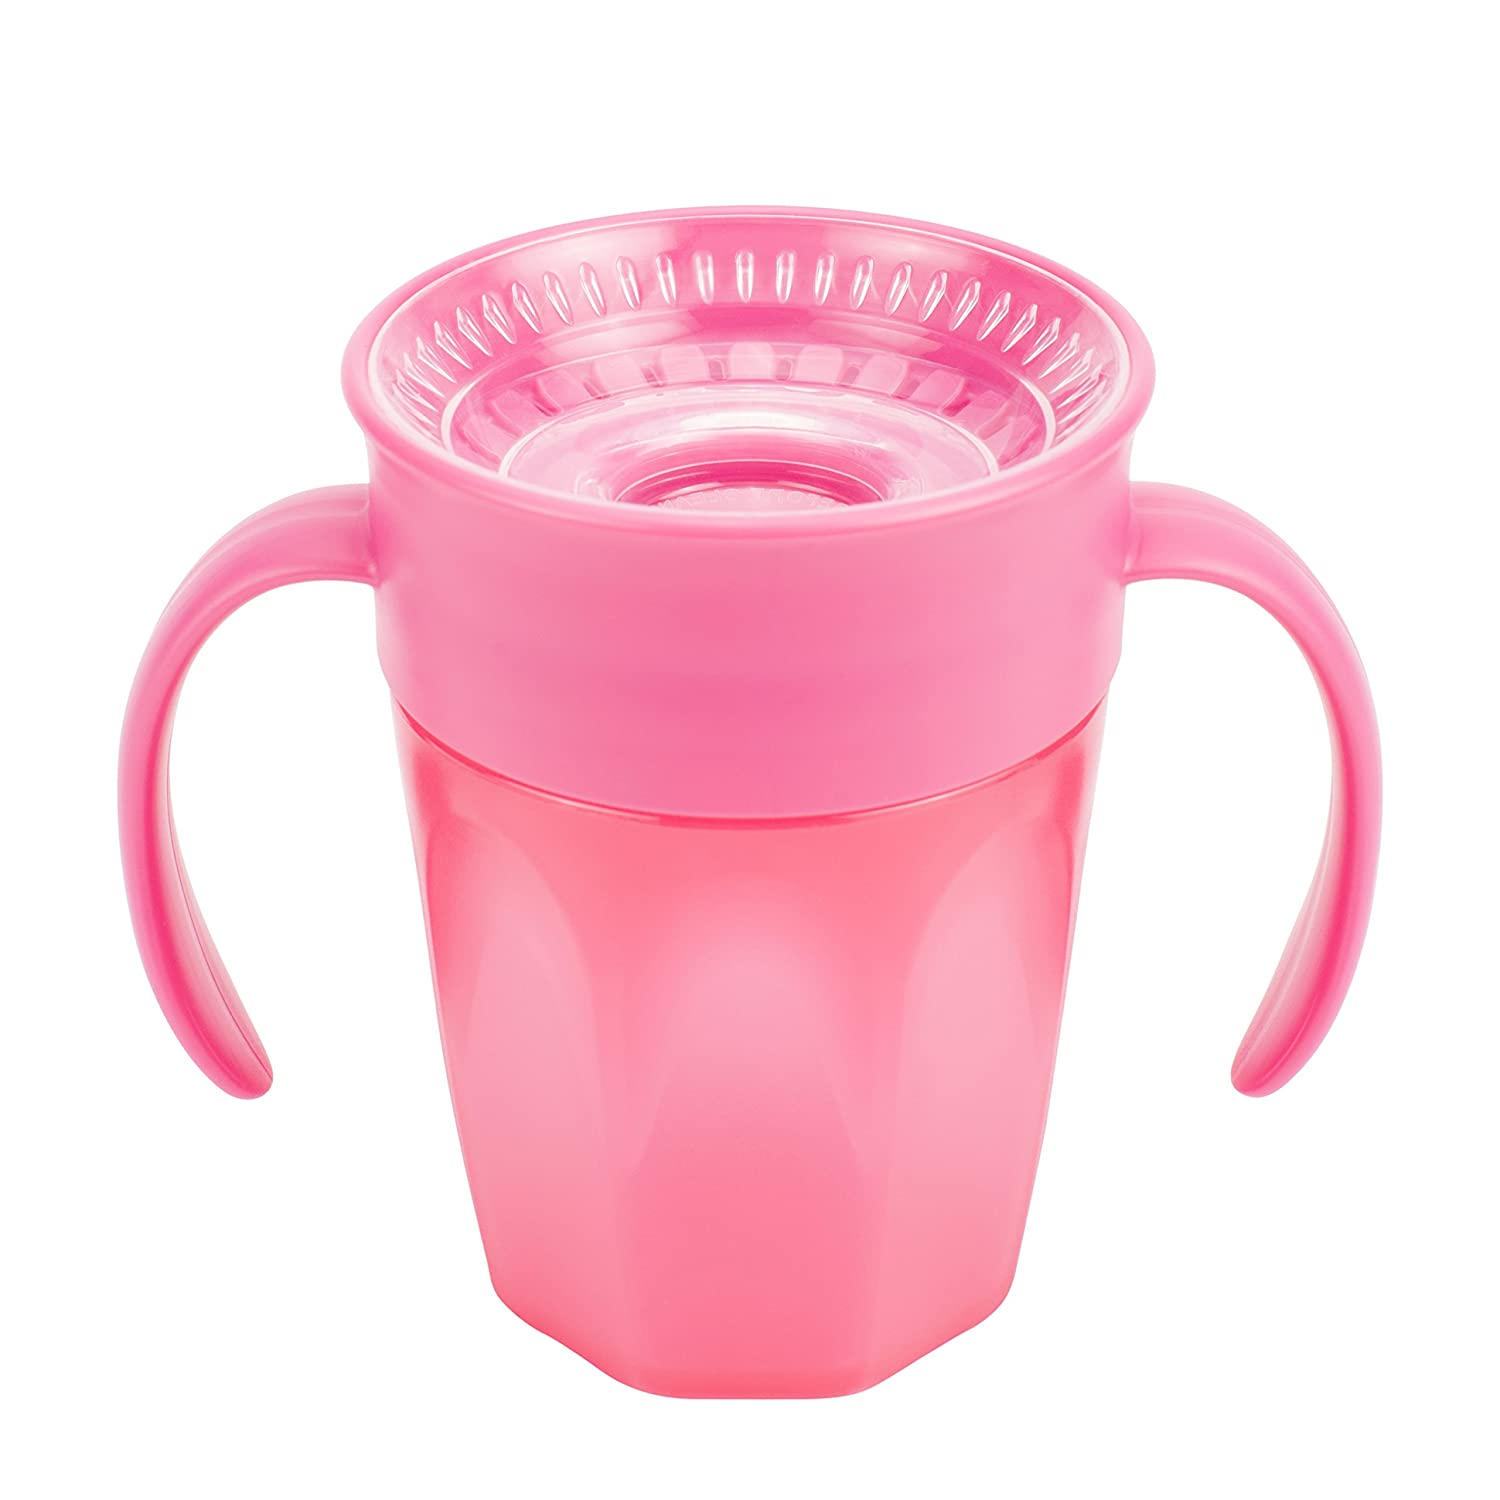 Dr. Brown's Cheers 360 Spoutless Training Cup, 6m+, 7 Ounce, Pink Dr. Brown' s TC71002-P6